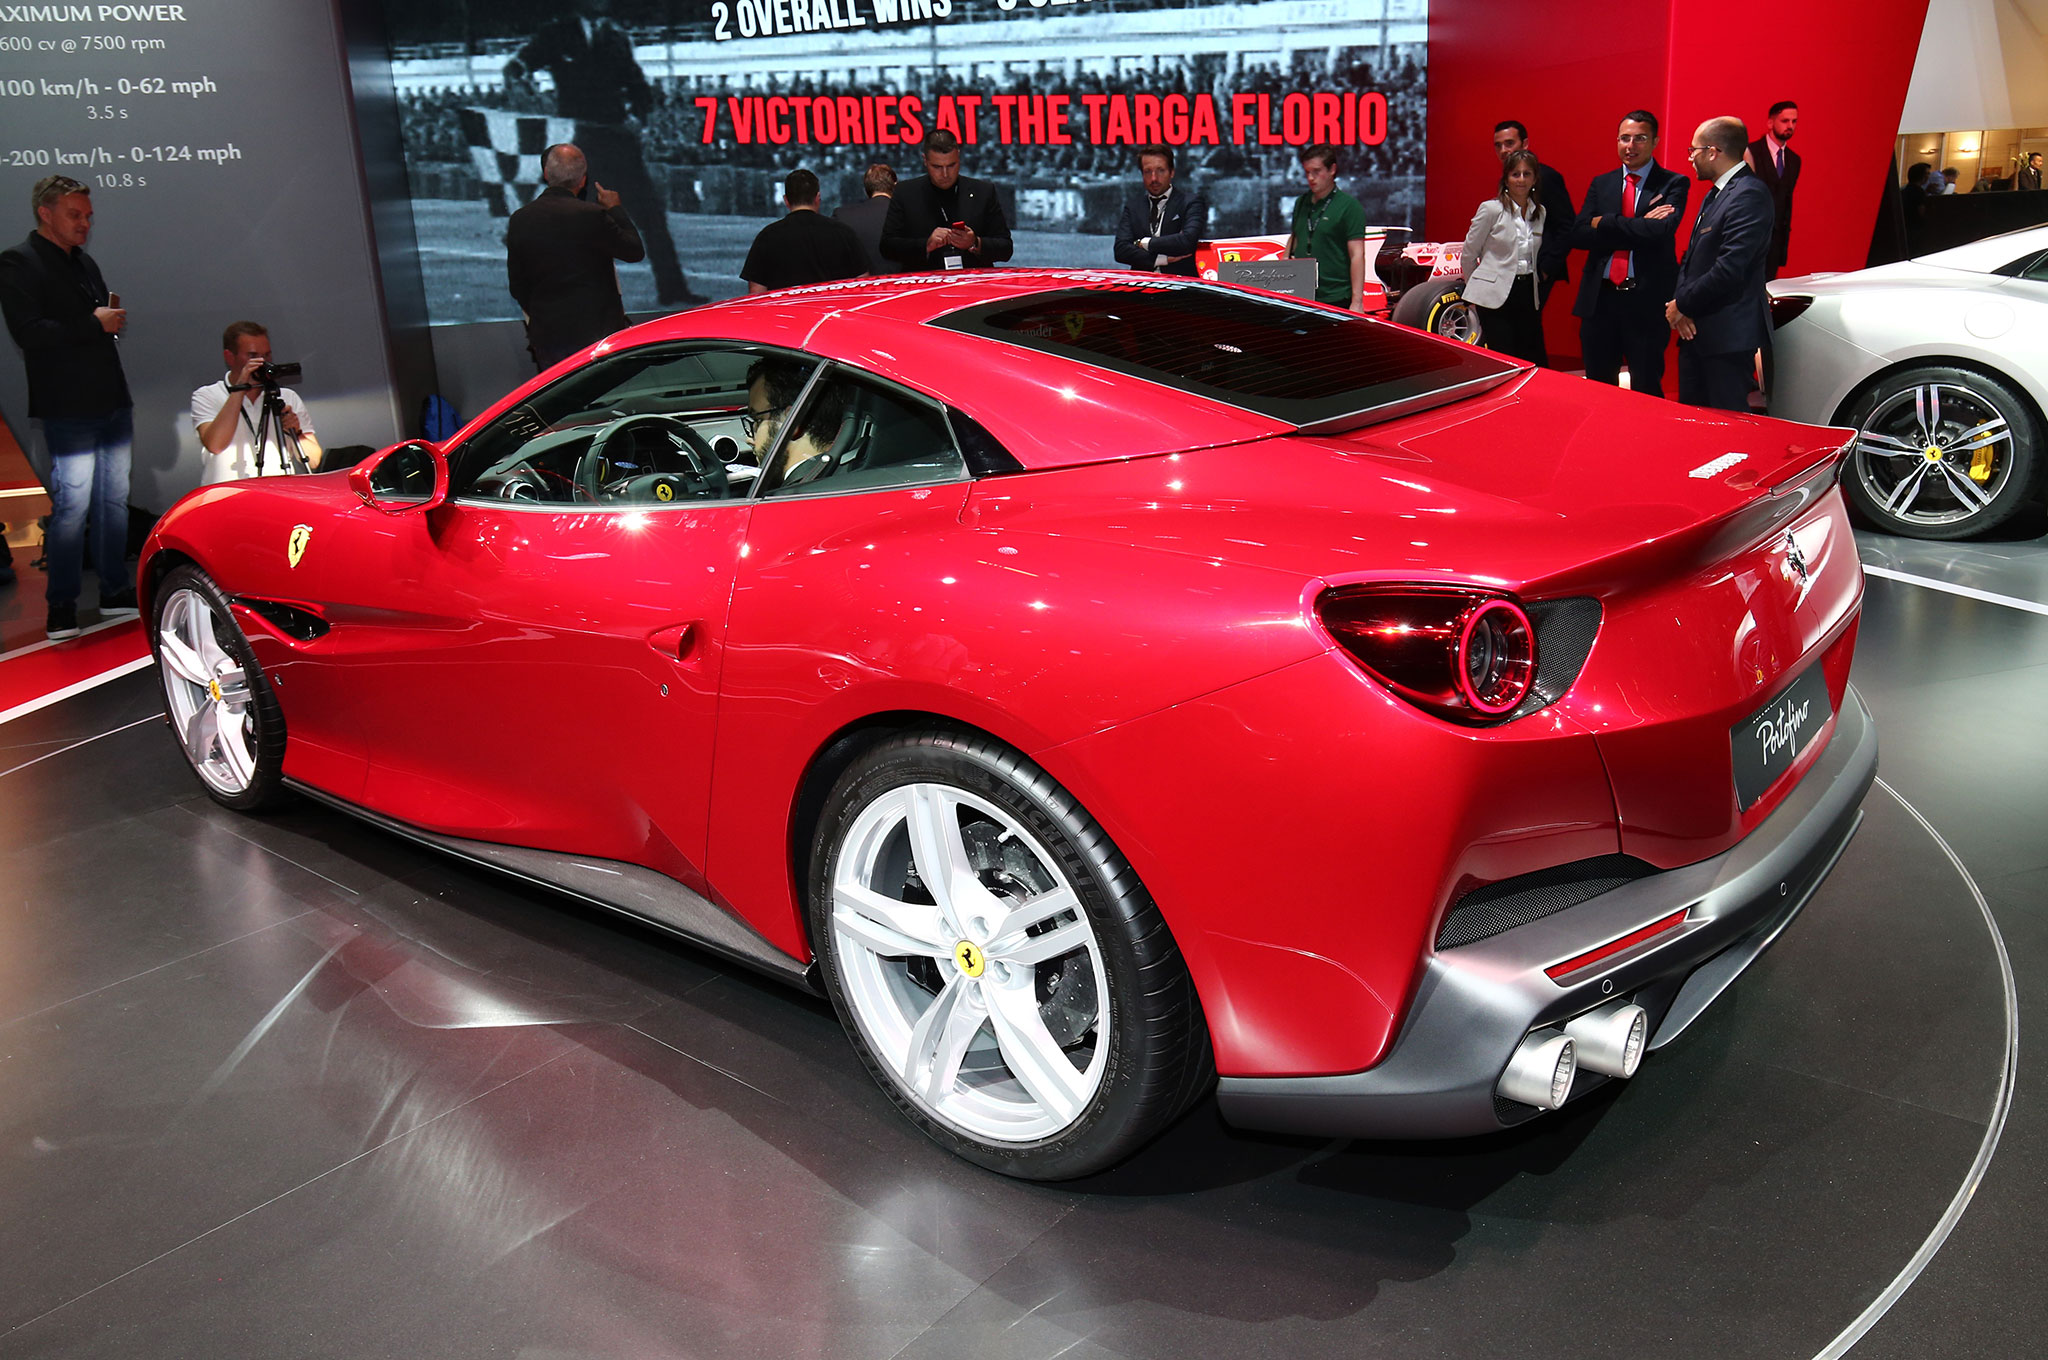 Ferrari-Portofino-in-Frankfurt-rear-side-view (1).jpg